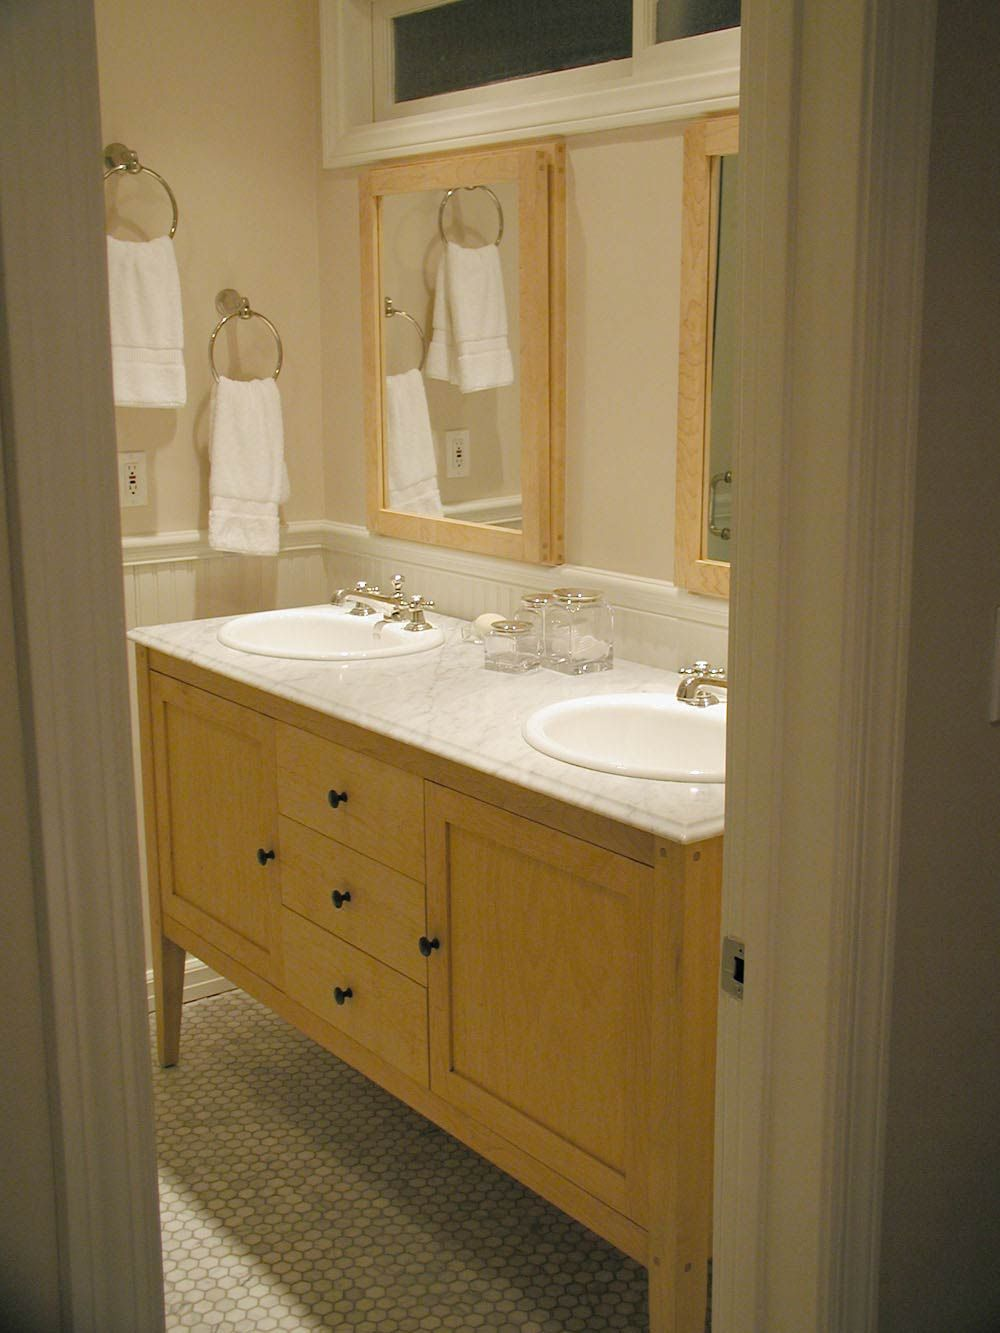 Delightful Maple Vanity With Light Sink. Like The Framed Mirrors And Wainscoting.  Harvest Maple Bathroom Great Pictures